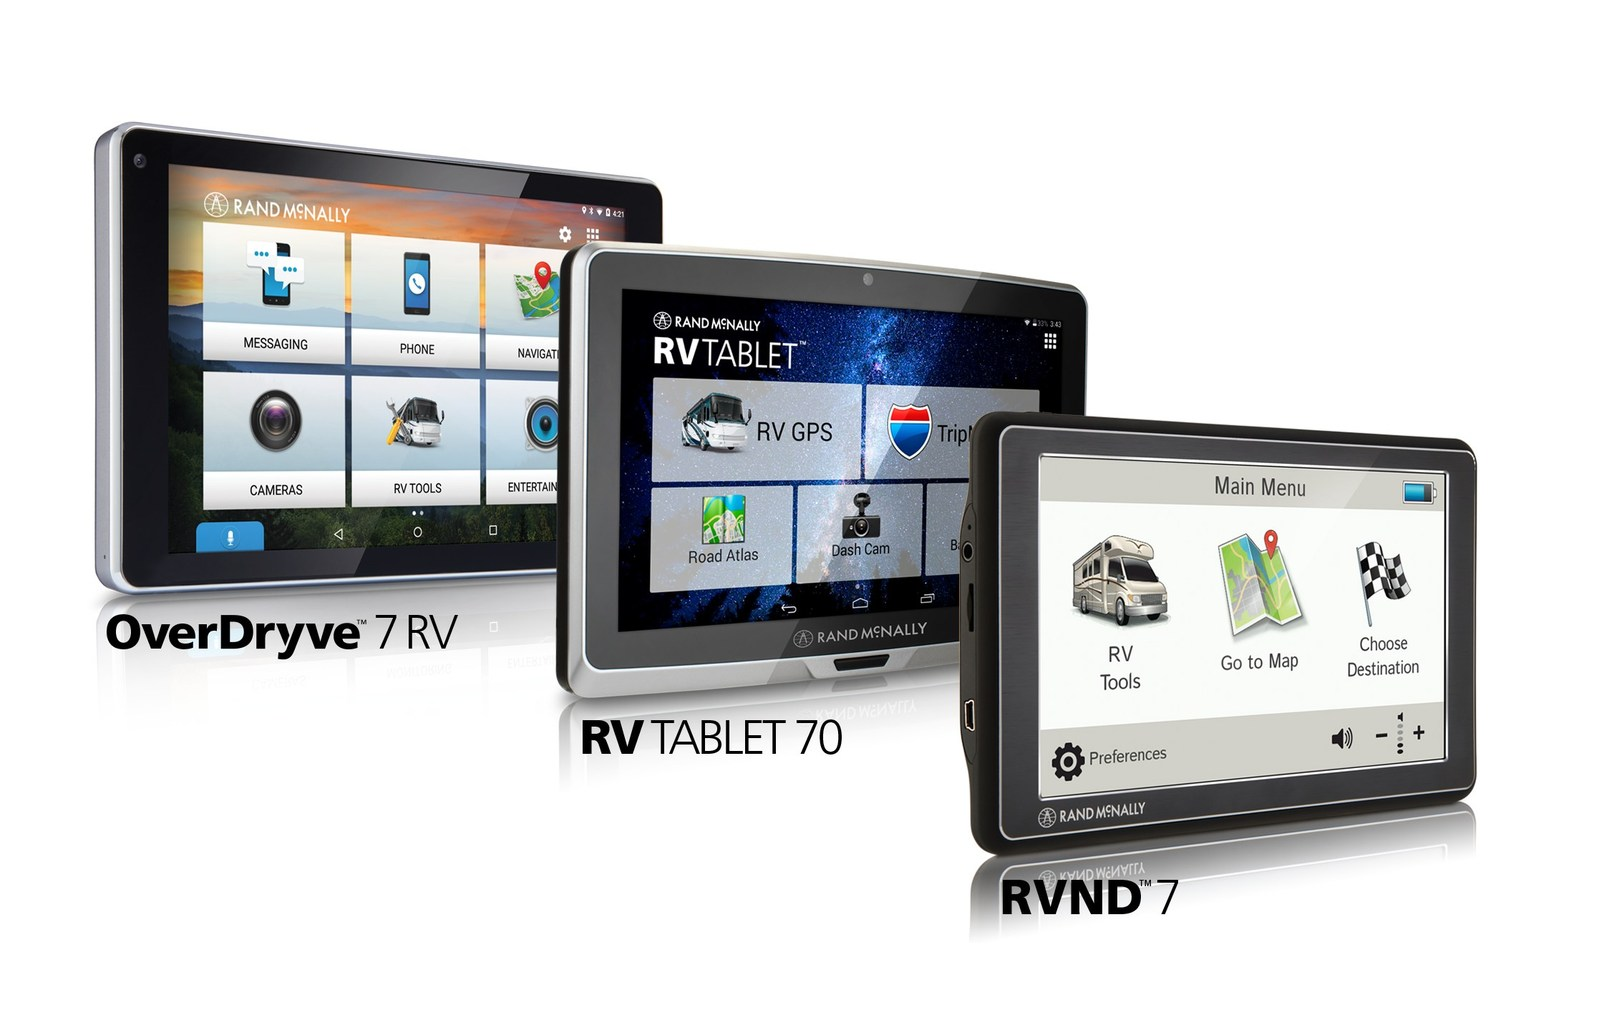 Rand Mcnally Overdryve 7 Rv Reviews >> Three New Dashboard Devices for RVs Now From Rand McNally